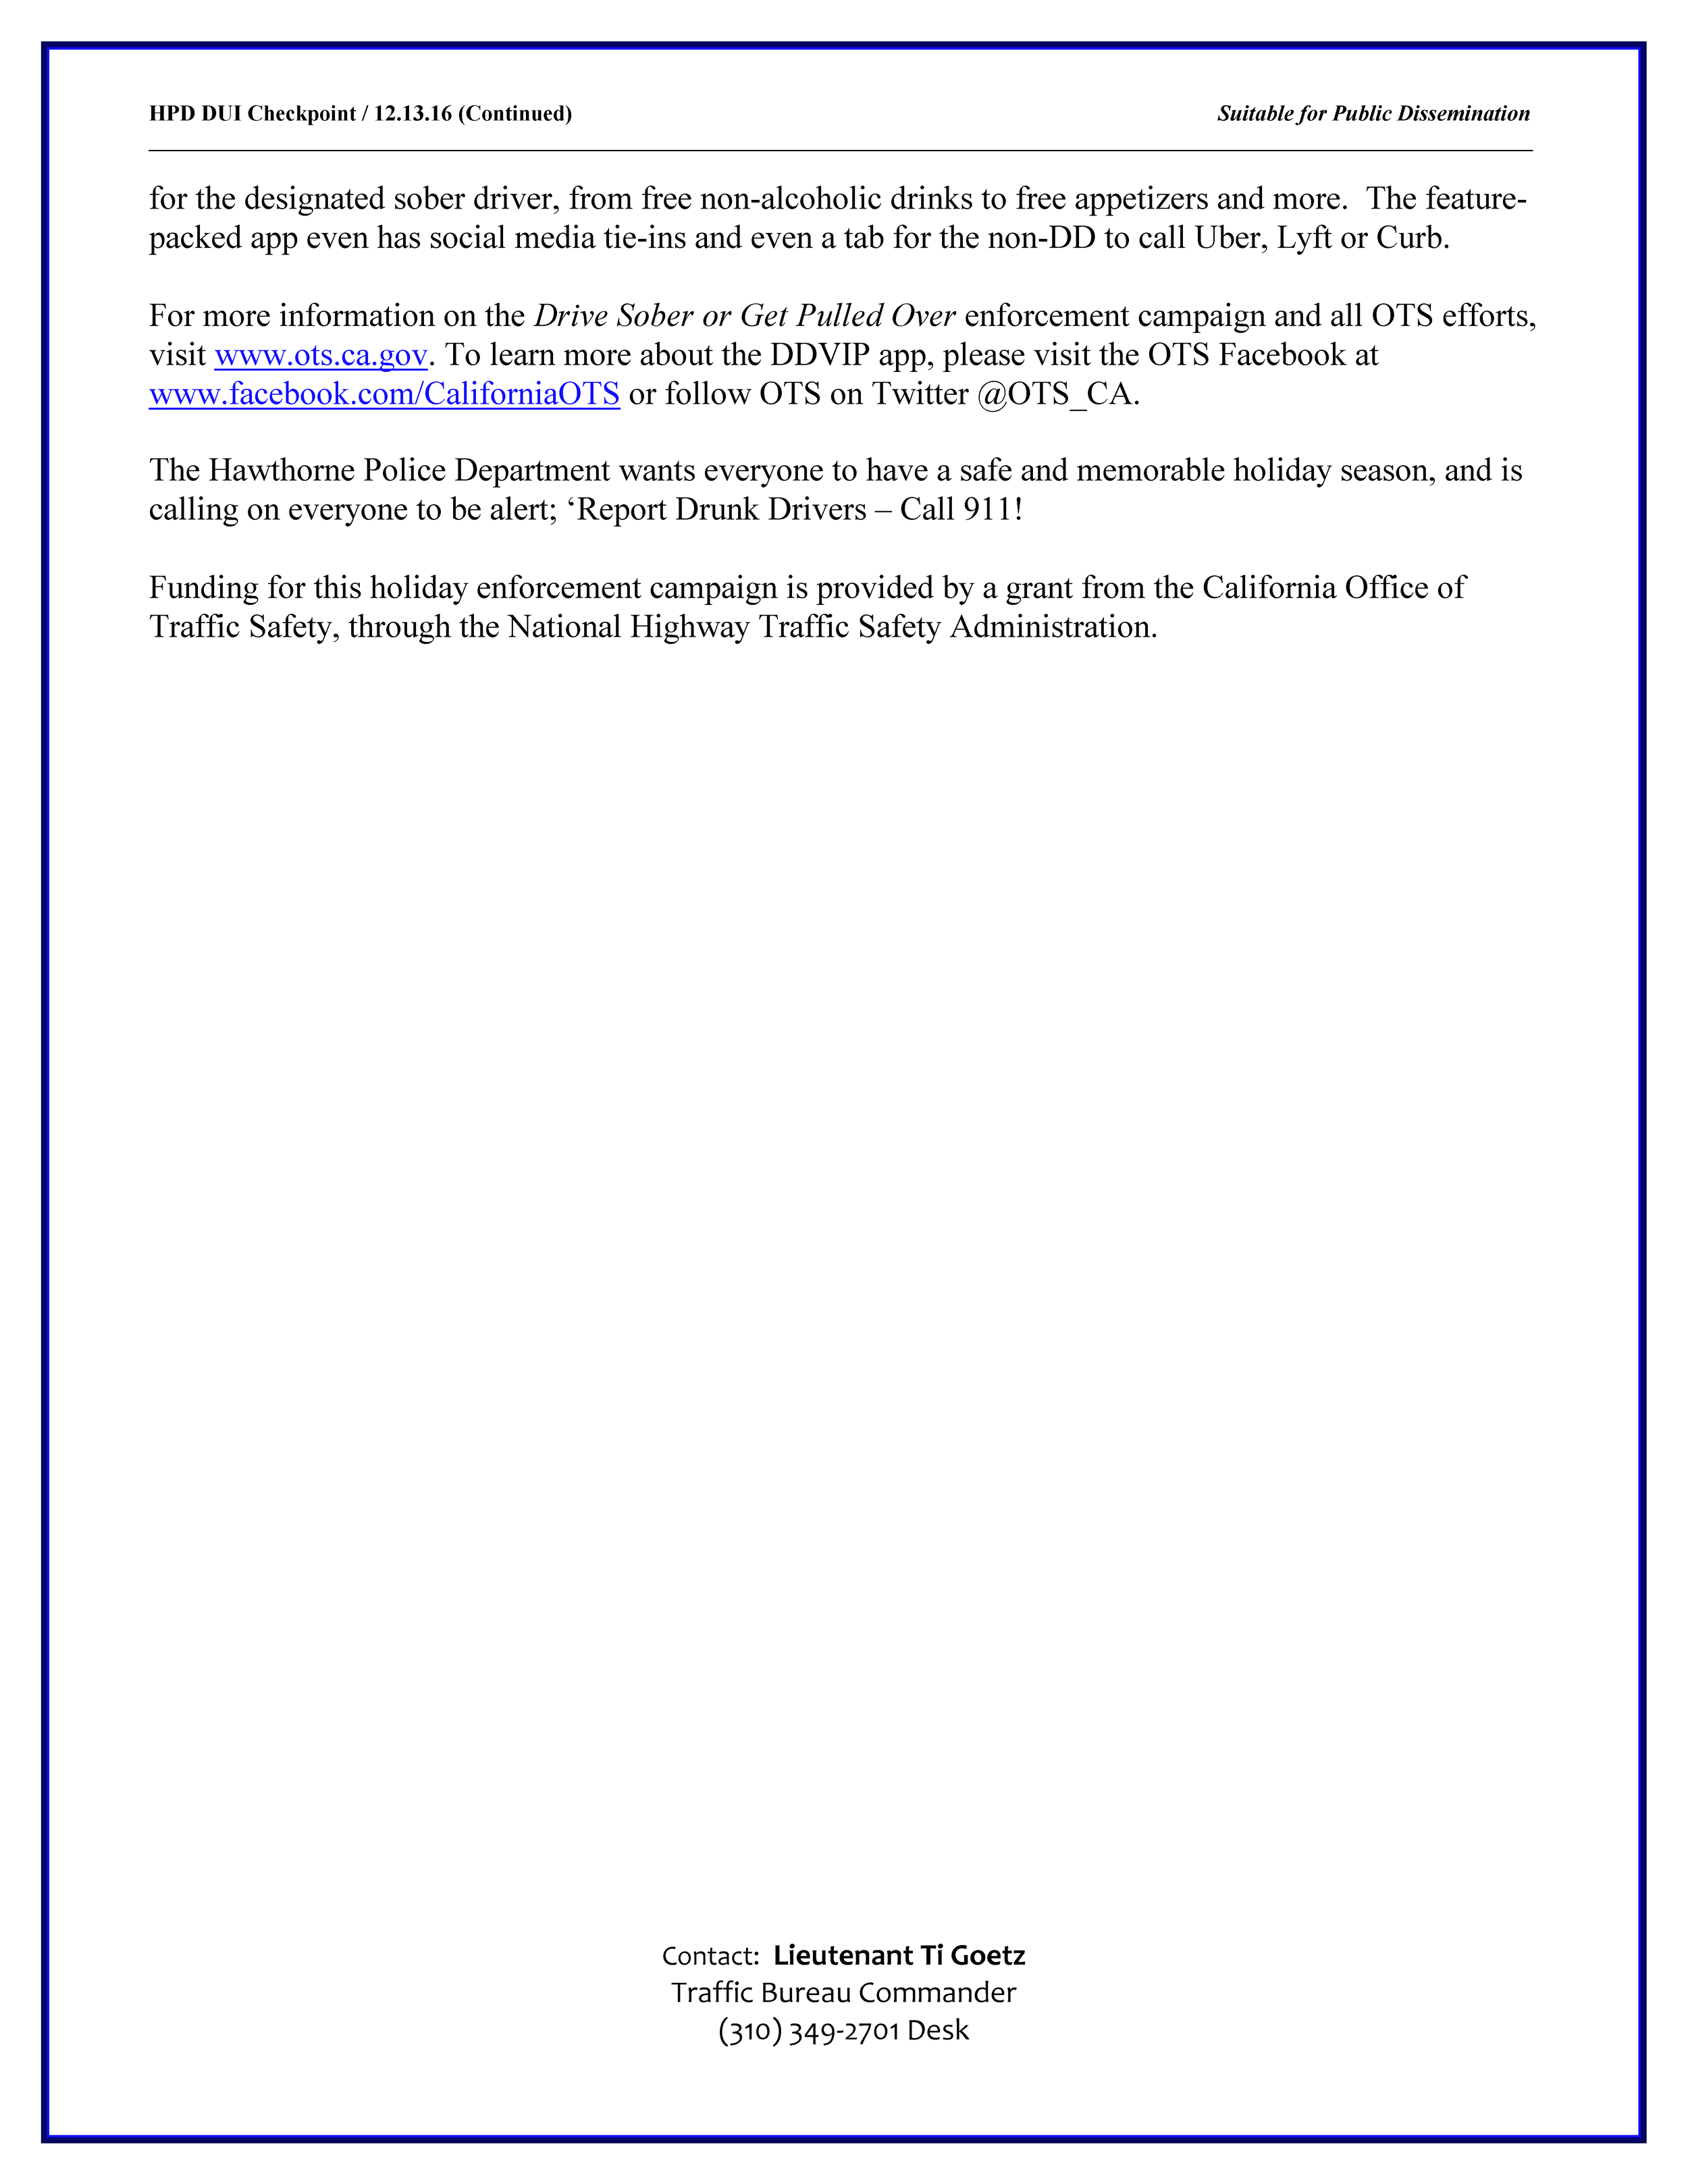 12 13 16 dui checkpoint press release_Page_2.png